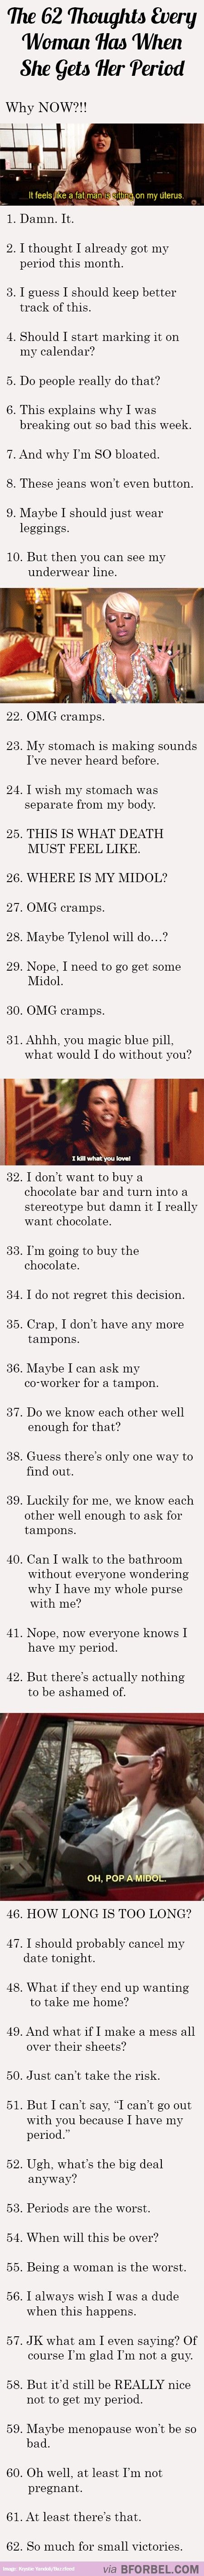 62 Thoughts Women Have When They're On Their Period… | Seriously, For Real?Seriously, For Real?